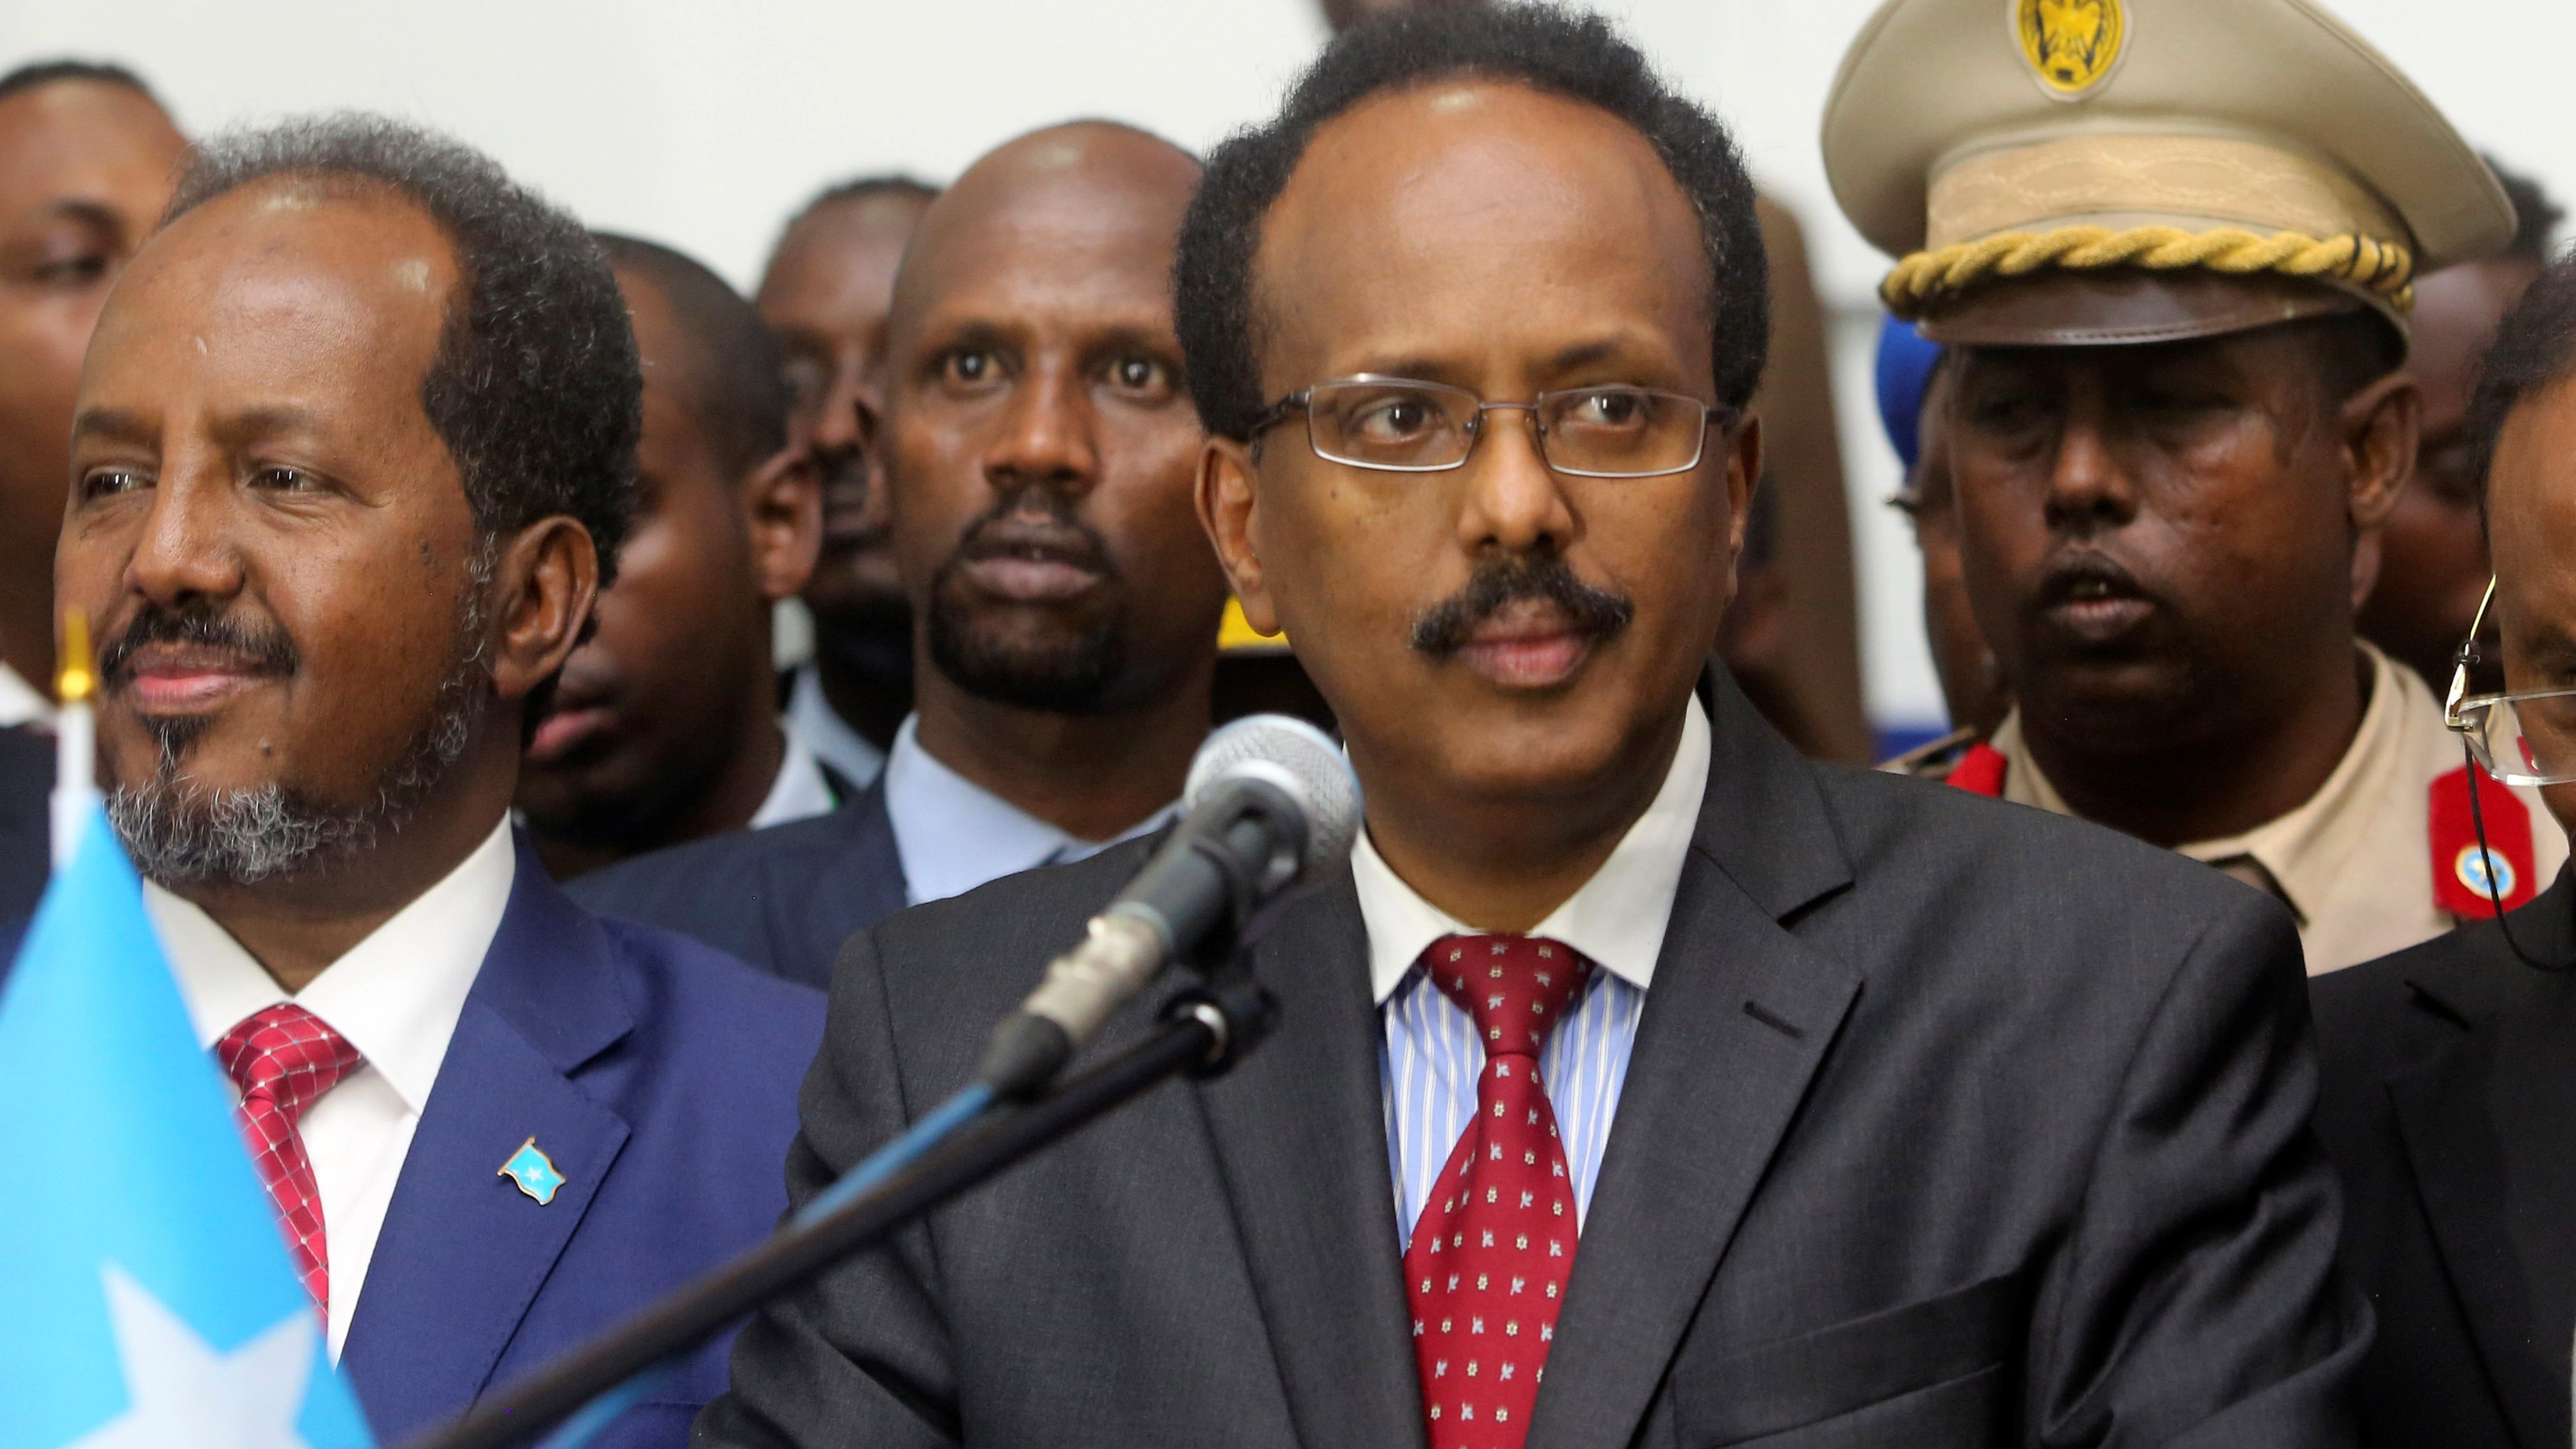 Somalia's newly elected President Mohamed Abdullahi Farmajo flanked by outgoing president Hassan Sheikh Mohamud (L) addresses lawmakers after winning the vote at the airport in Somalia's capital Mogadishu, February 8, 2017.